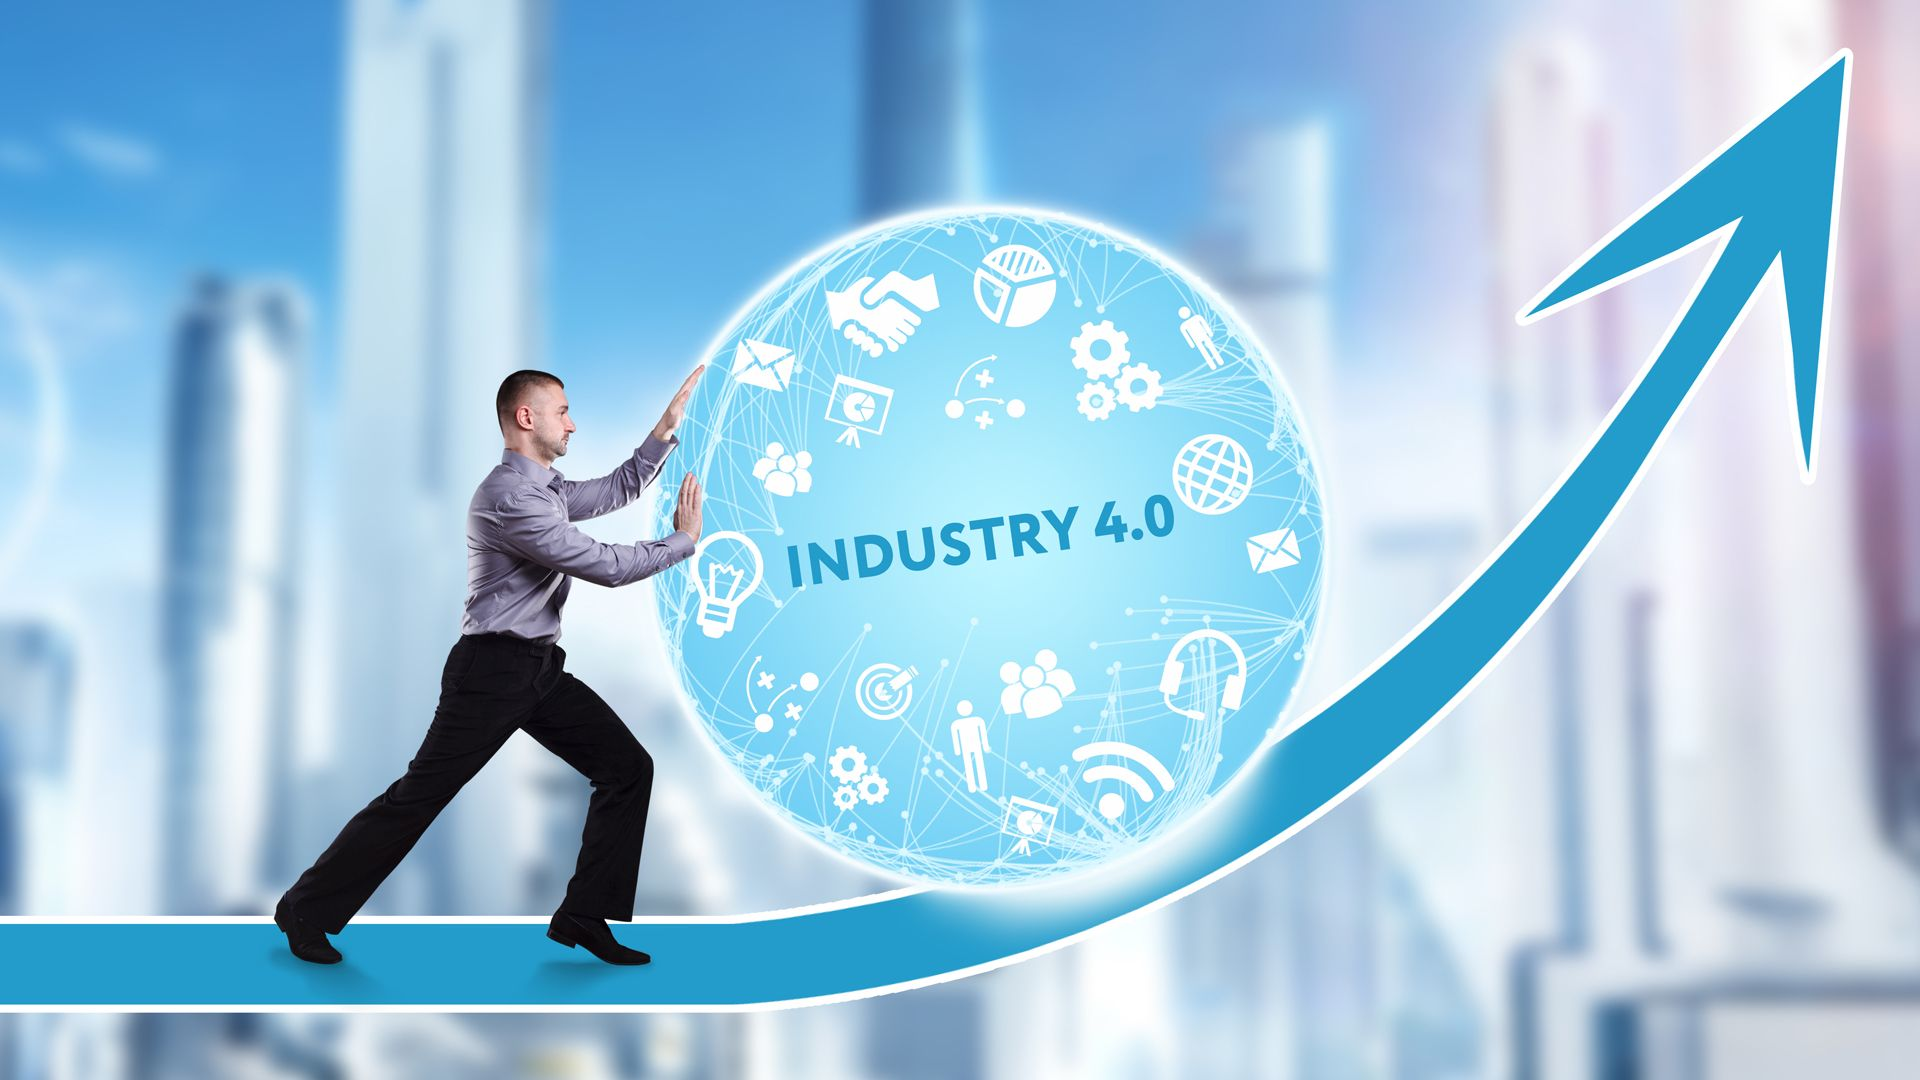 Industry 4.0 Obstacles and Opportunities